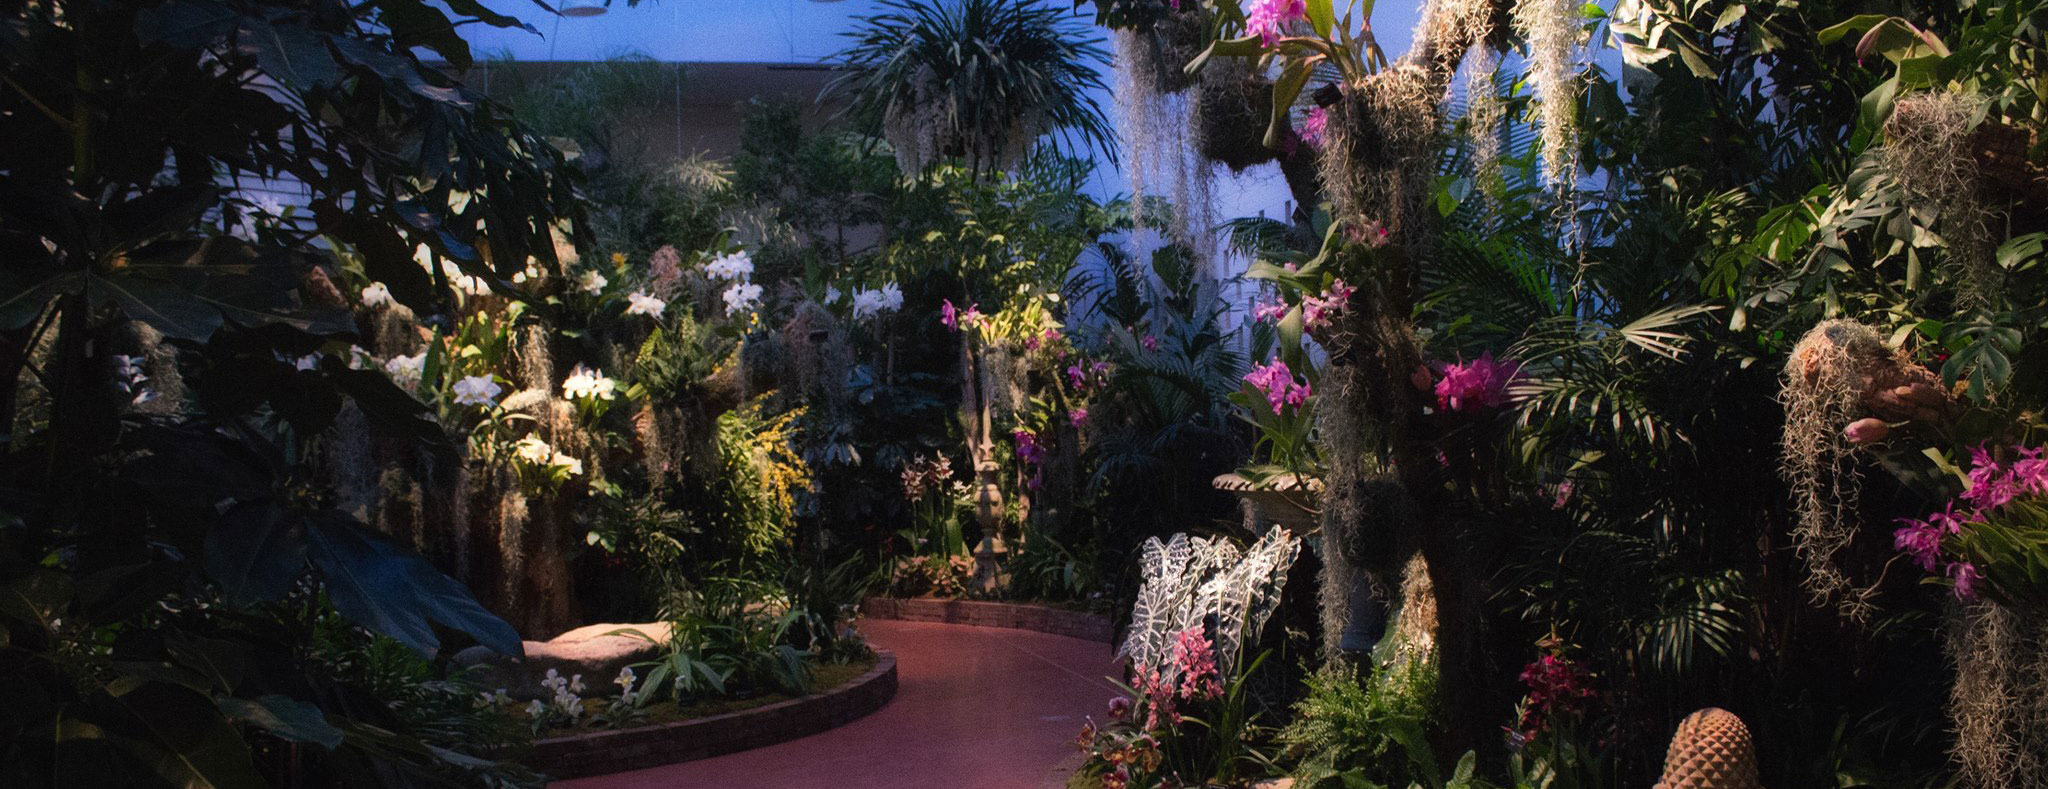 Orchid Show at night